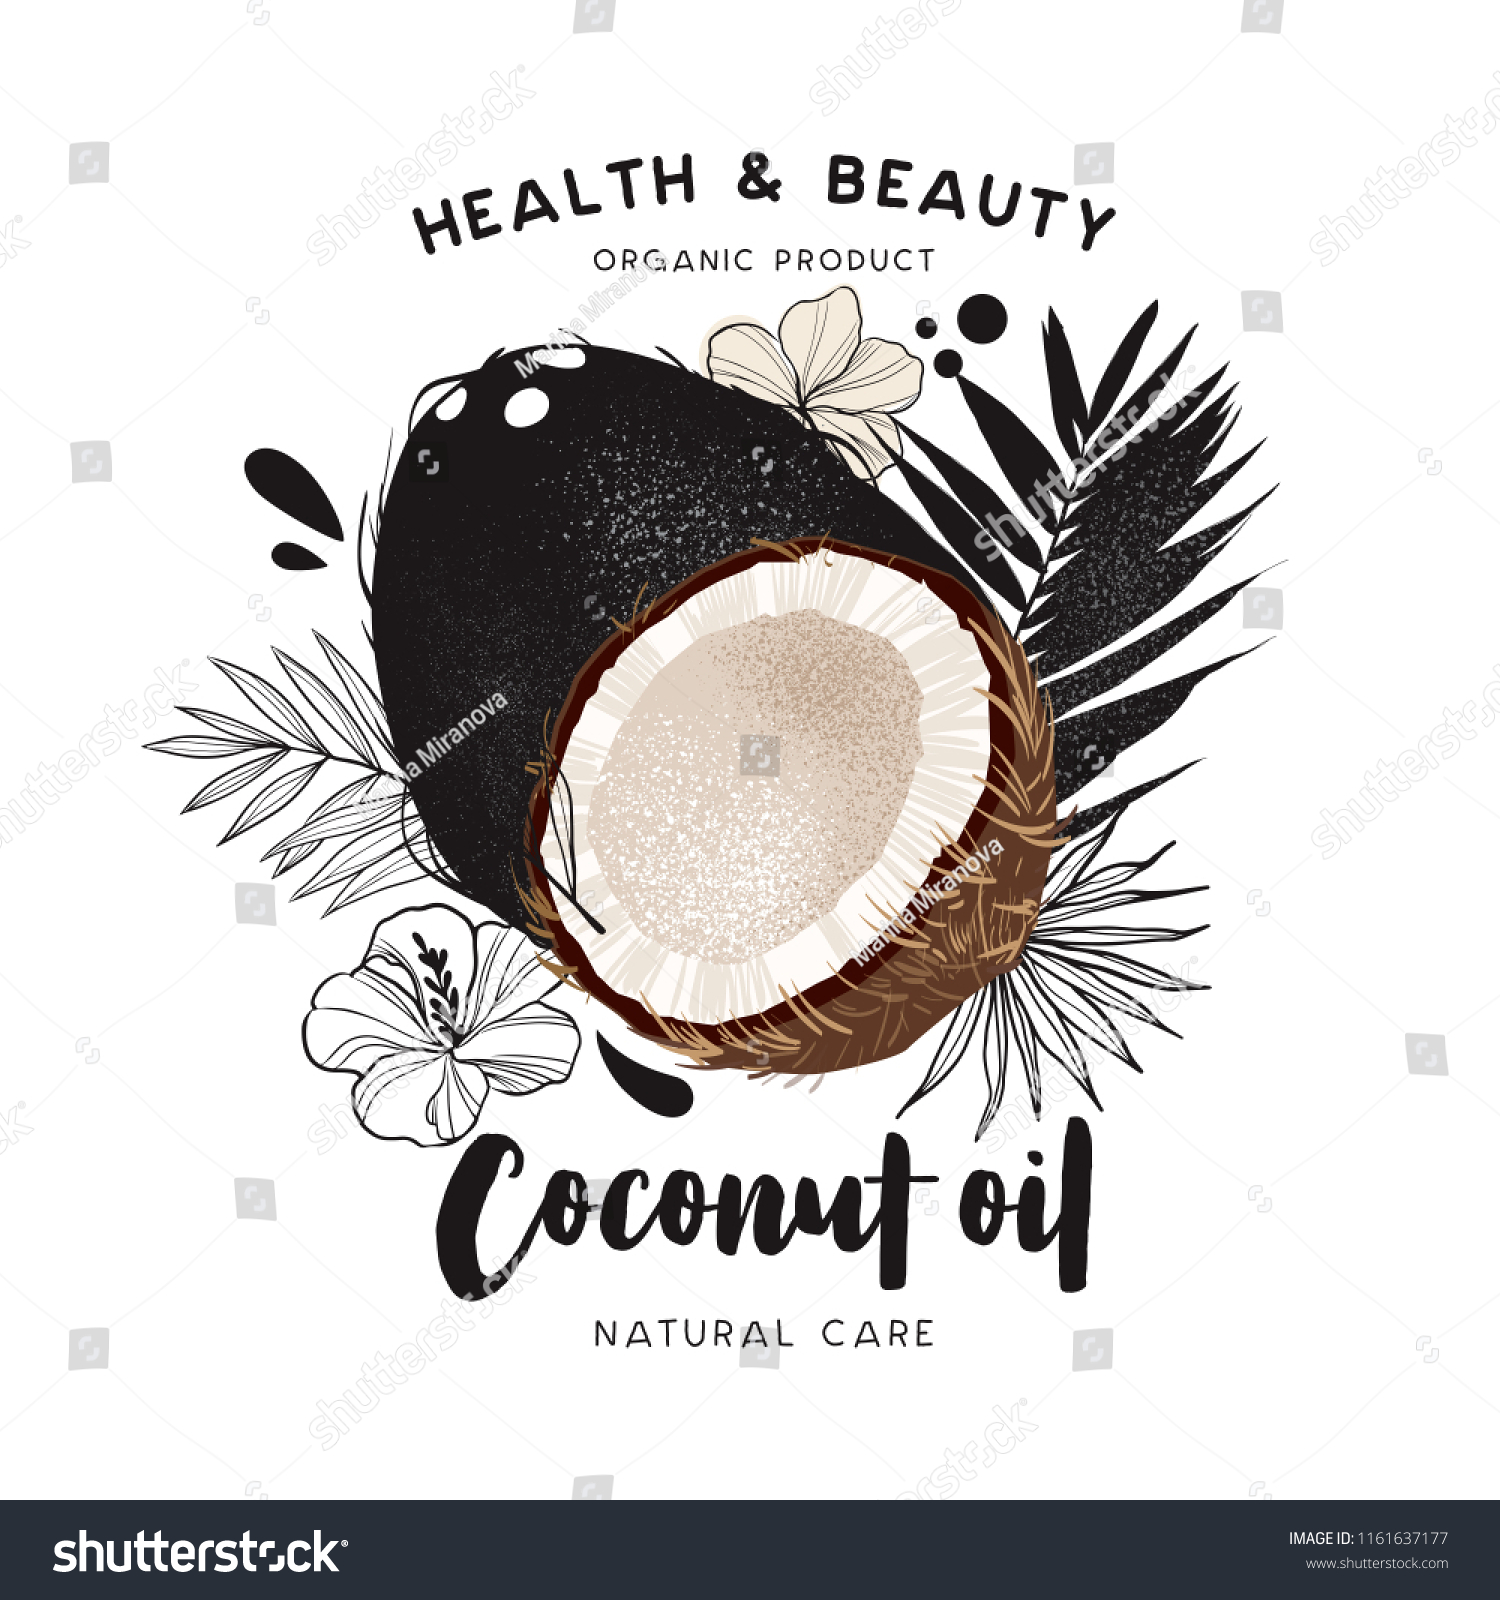 Coconut Oil Template Packaging Cosmetics Labels Stock Vector Royalty Free 1161637177